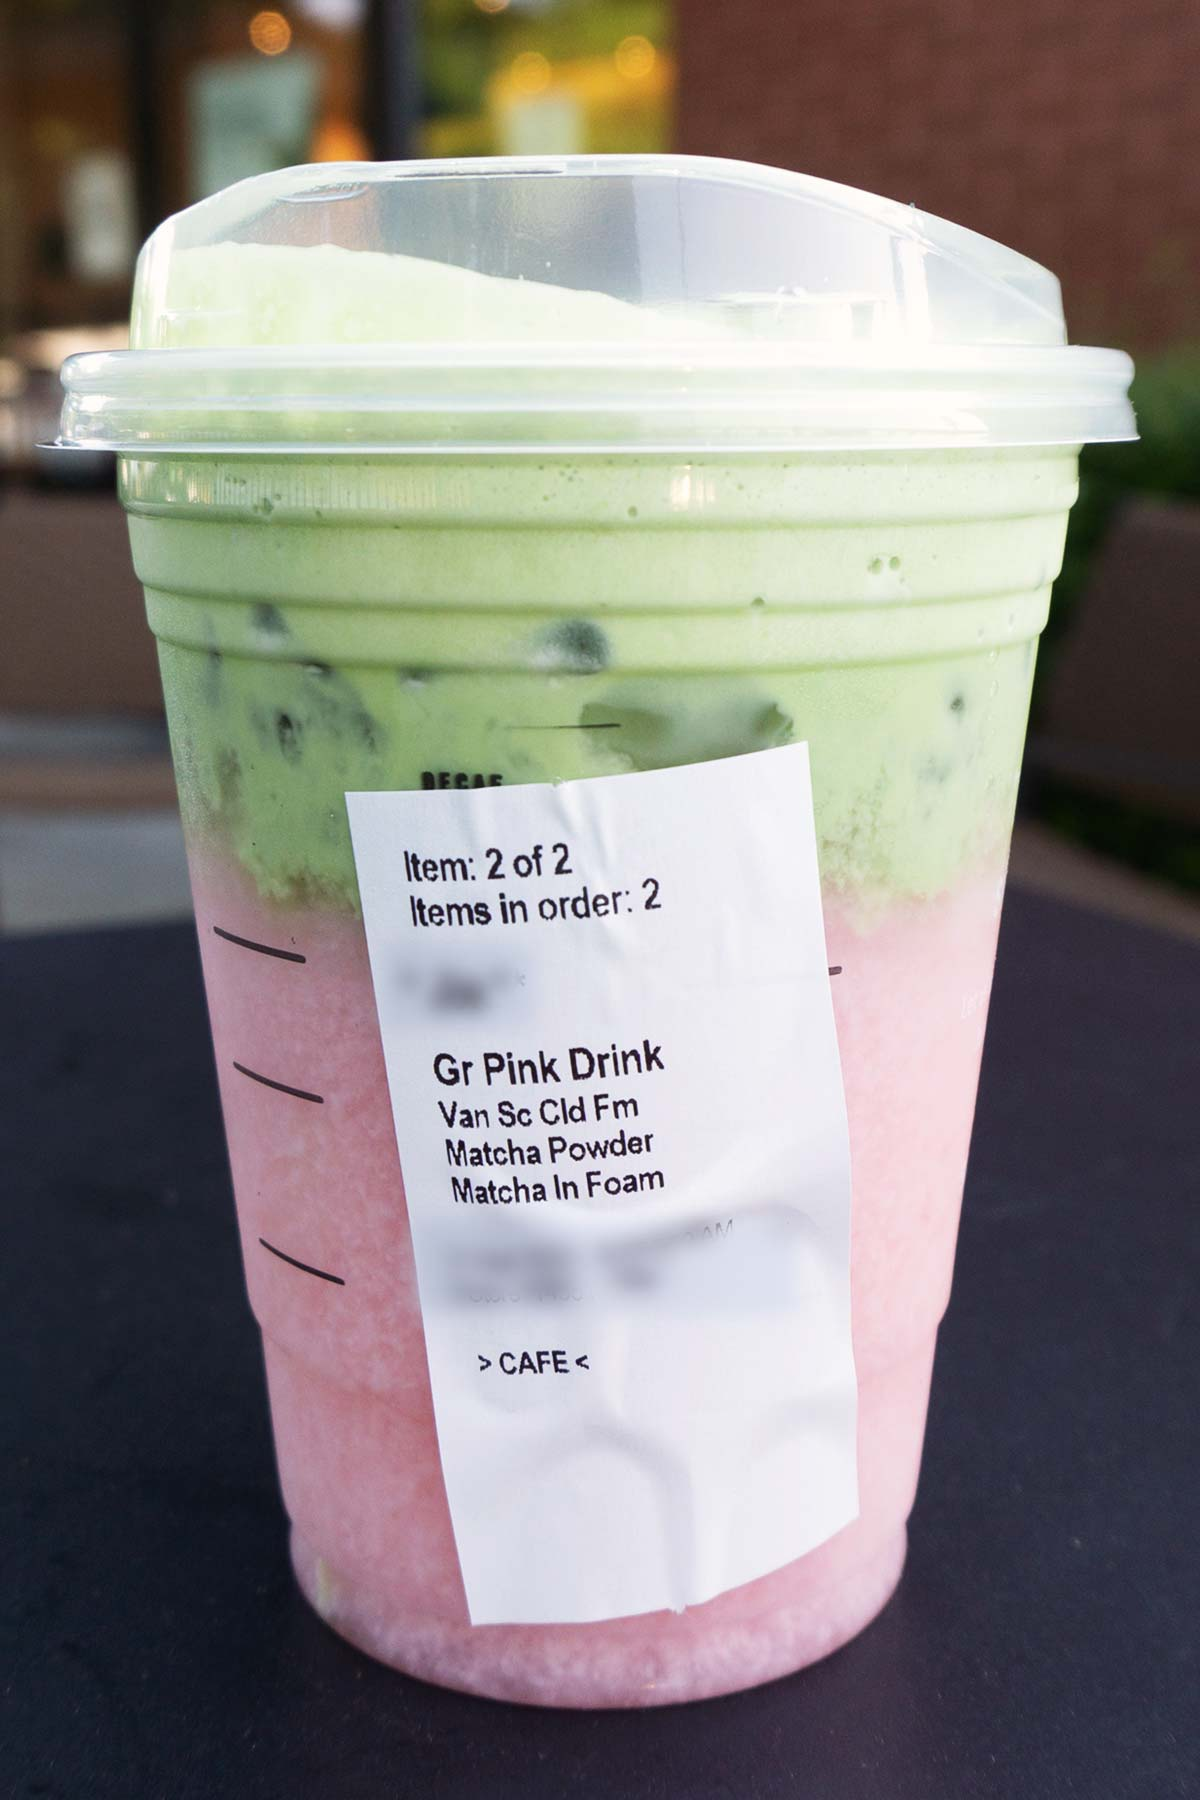 TikTok Matcha Pink Drink in a Starbucks cup with order sticker showing.